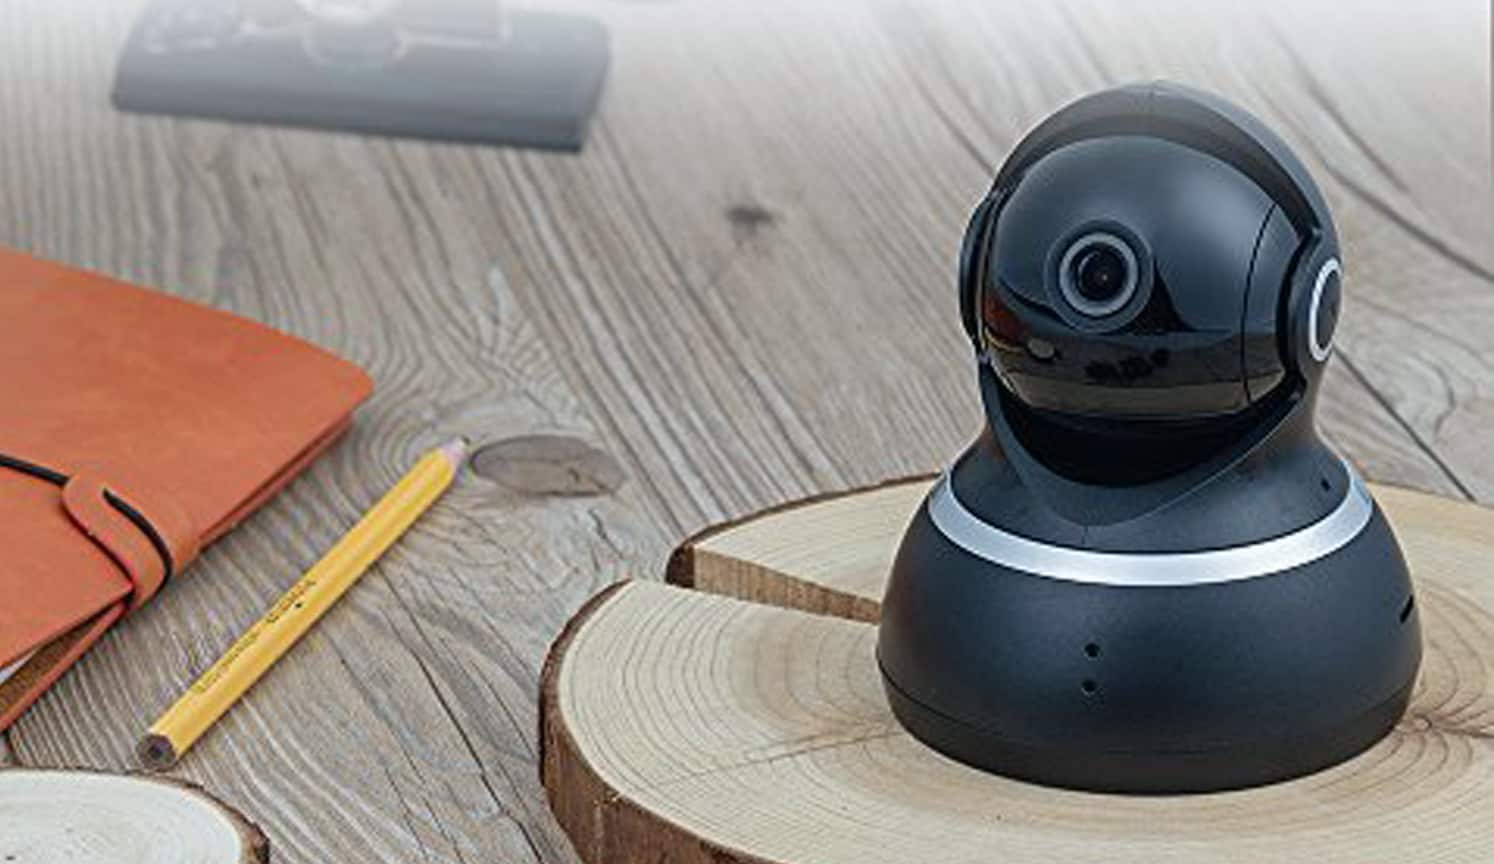 Best Surveillance Camera as the second related product of the Best Home Security Camera